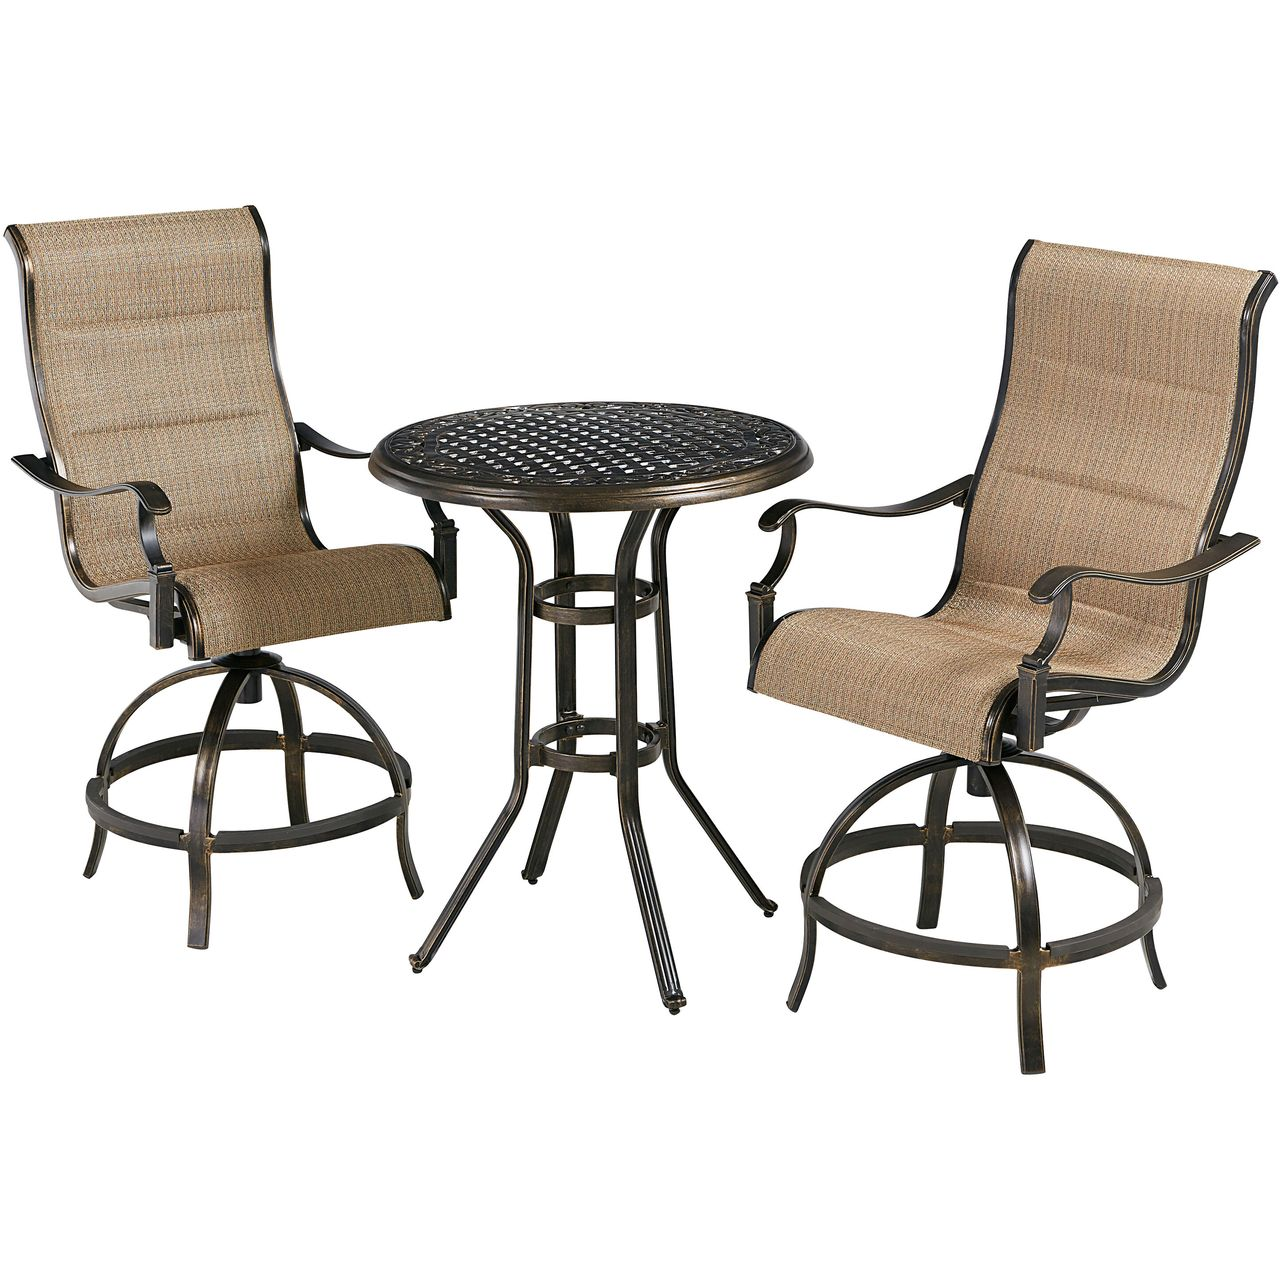 """Hanover Traditions 3-Pc 30"""" High-Dining Bistro Set With Tan Chairs"""